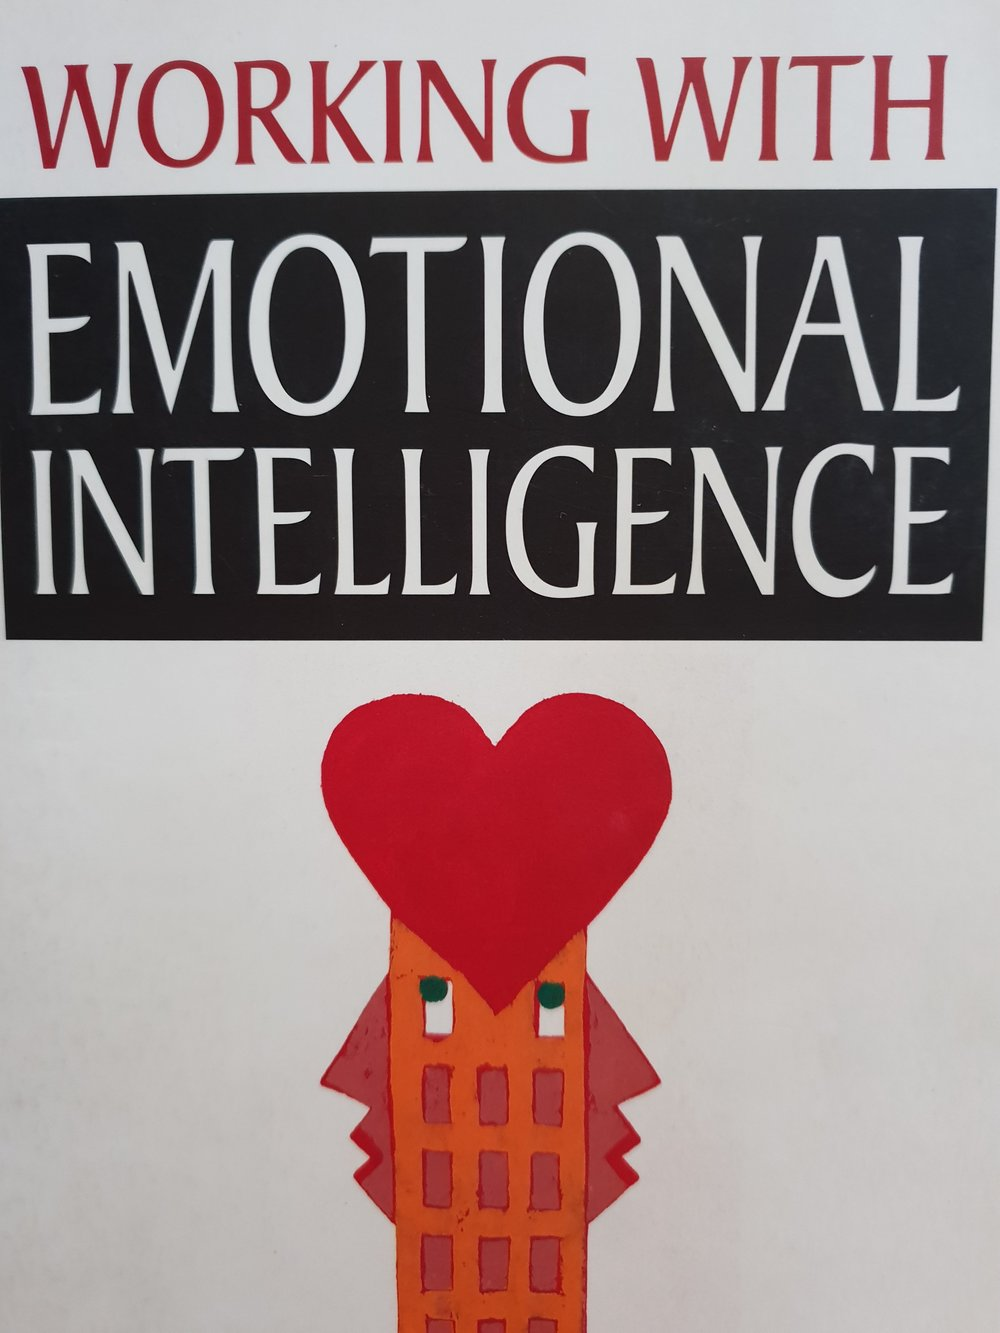 My copy of Working With Emotional Intelligence by Daniel Goleman is 20 years old.